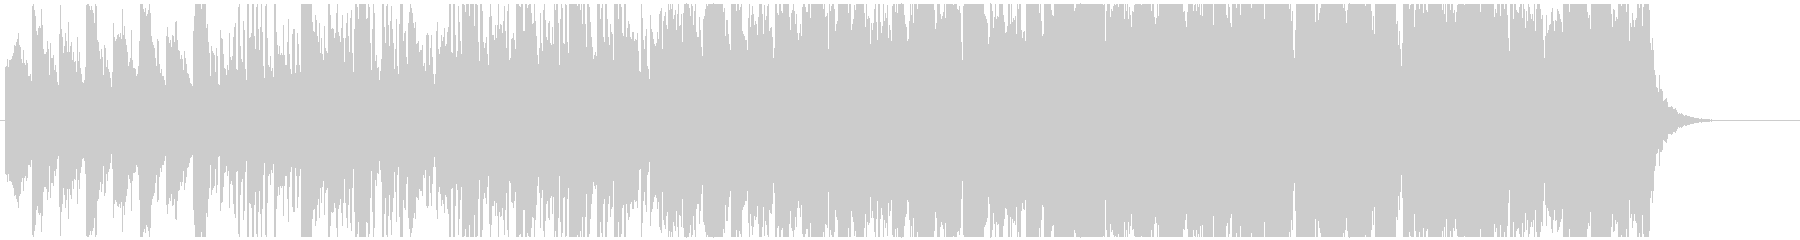 Elegant romantic BGM's unreproduced waveform